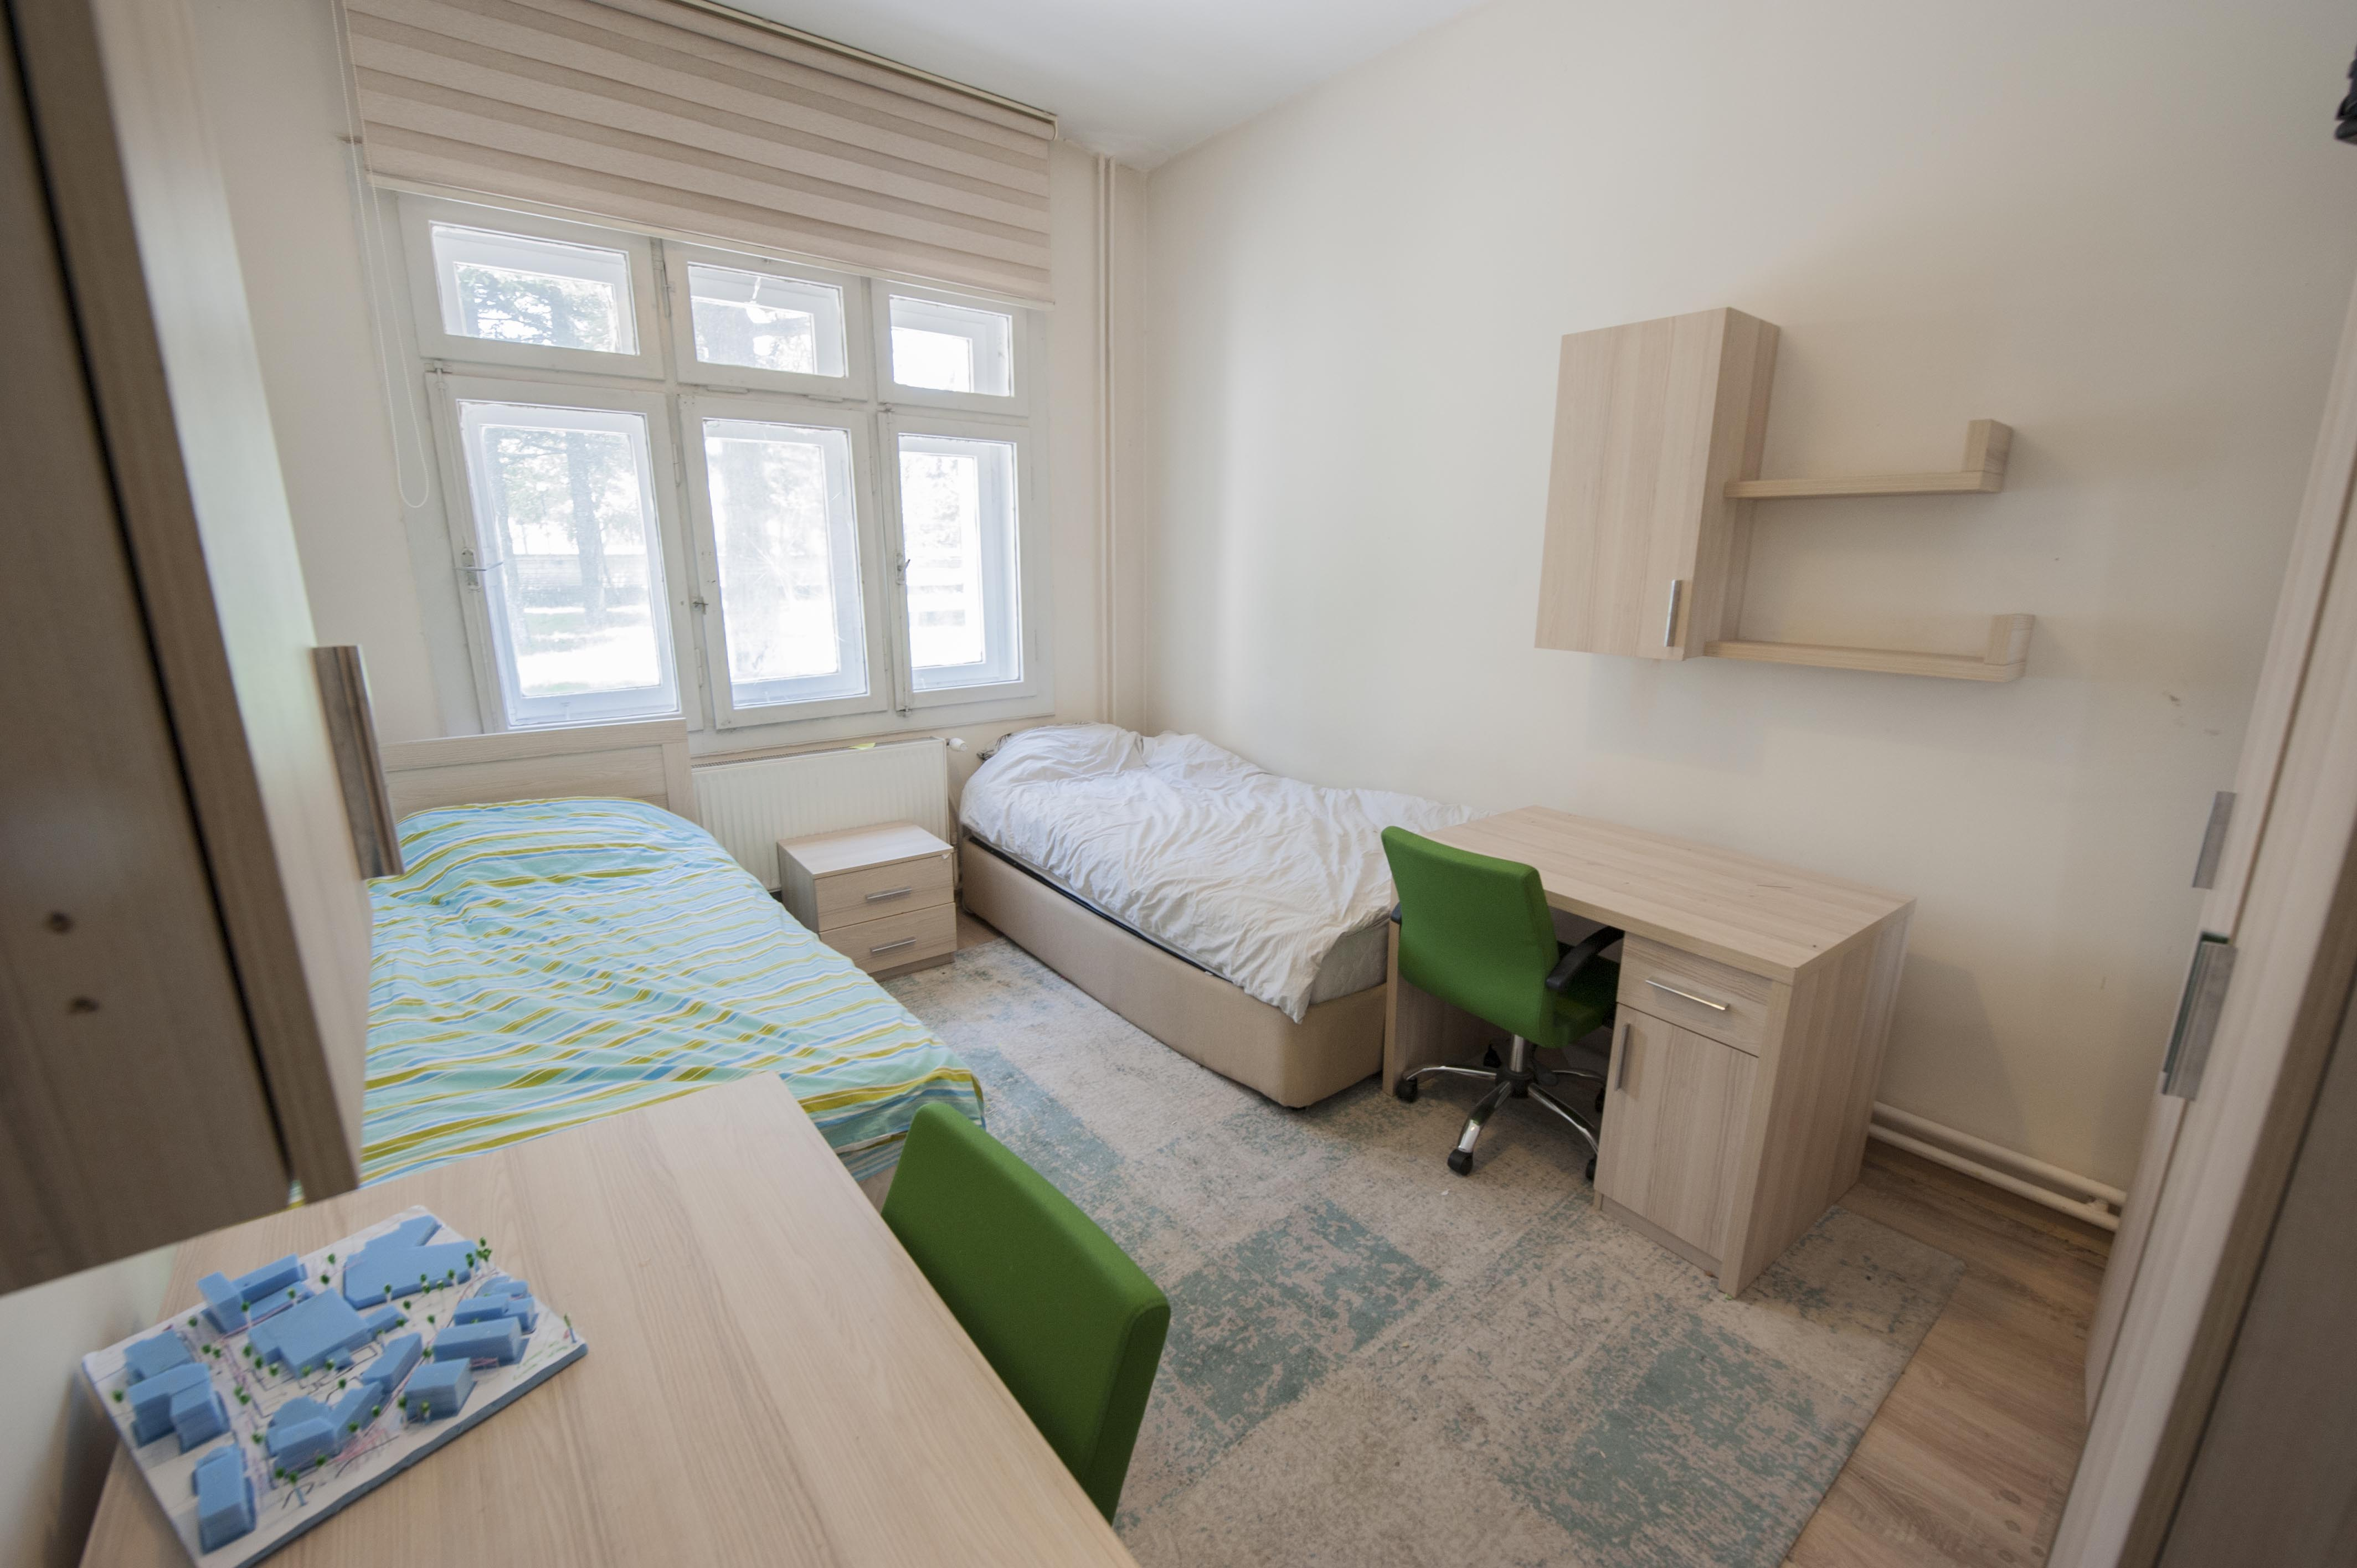 Abdullah Gül University student dorms, student village, on-campus accommodation